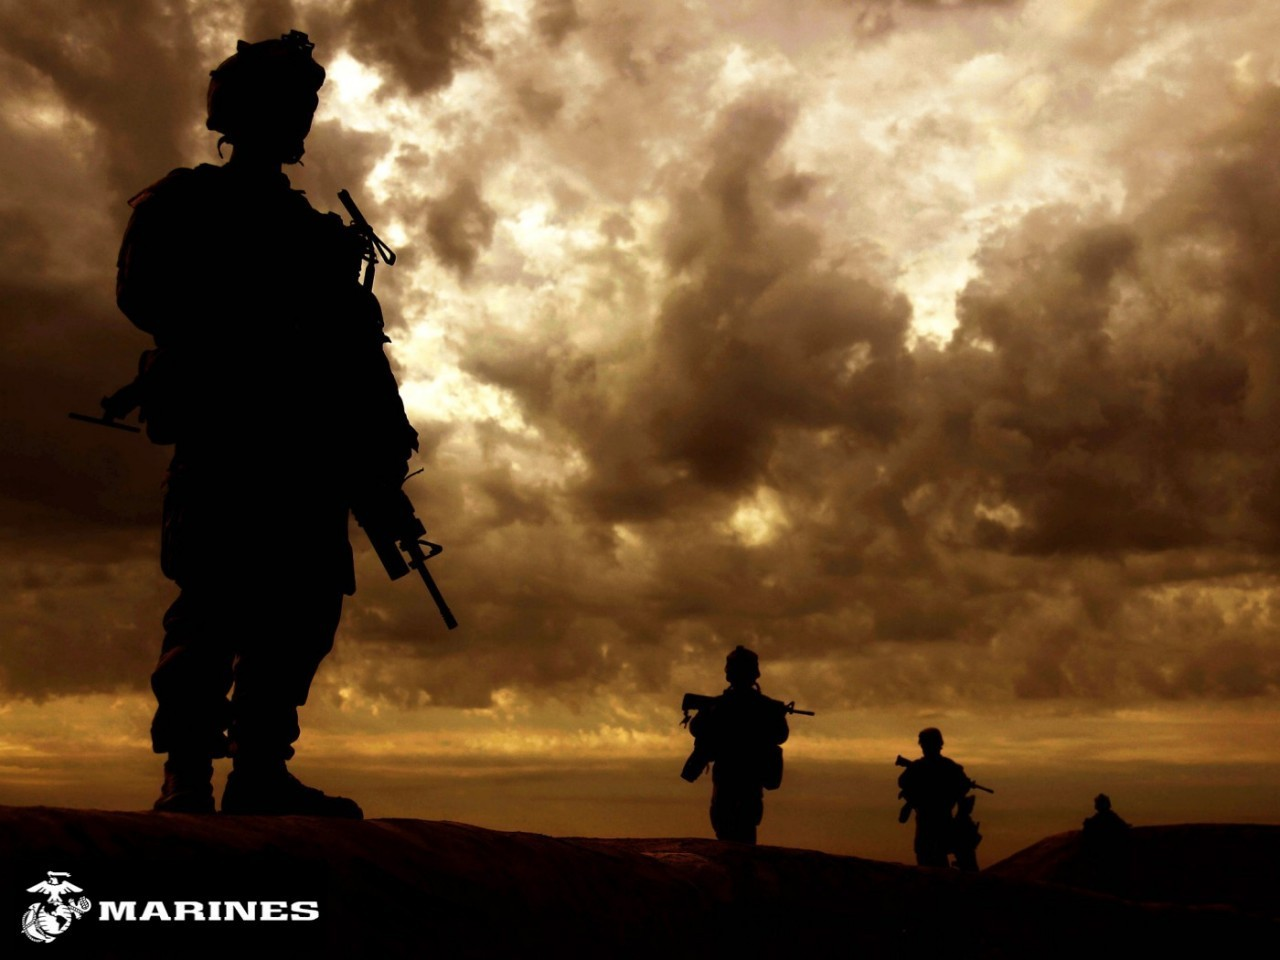 US ARMY HD Live Wallpaper FREE  FREE Android app market 1280x960